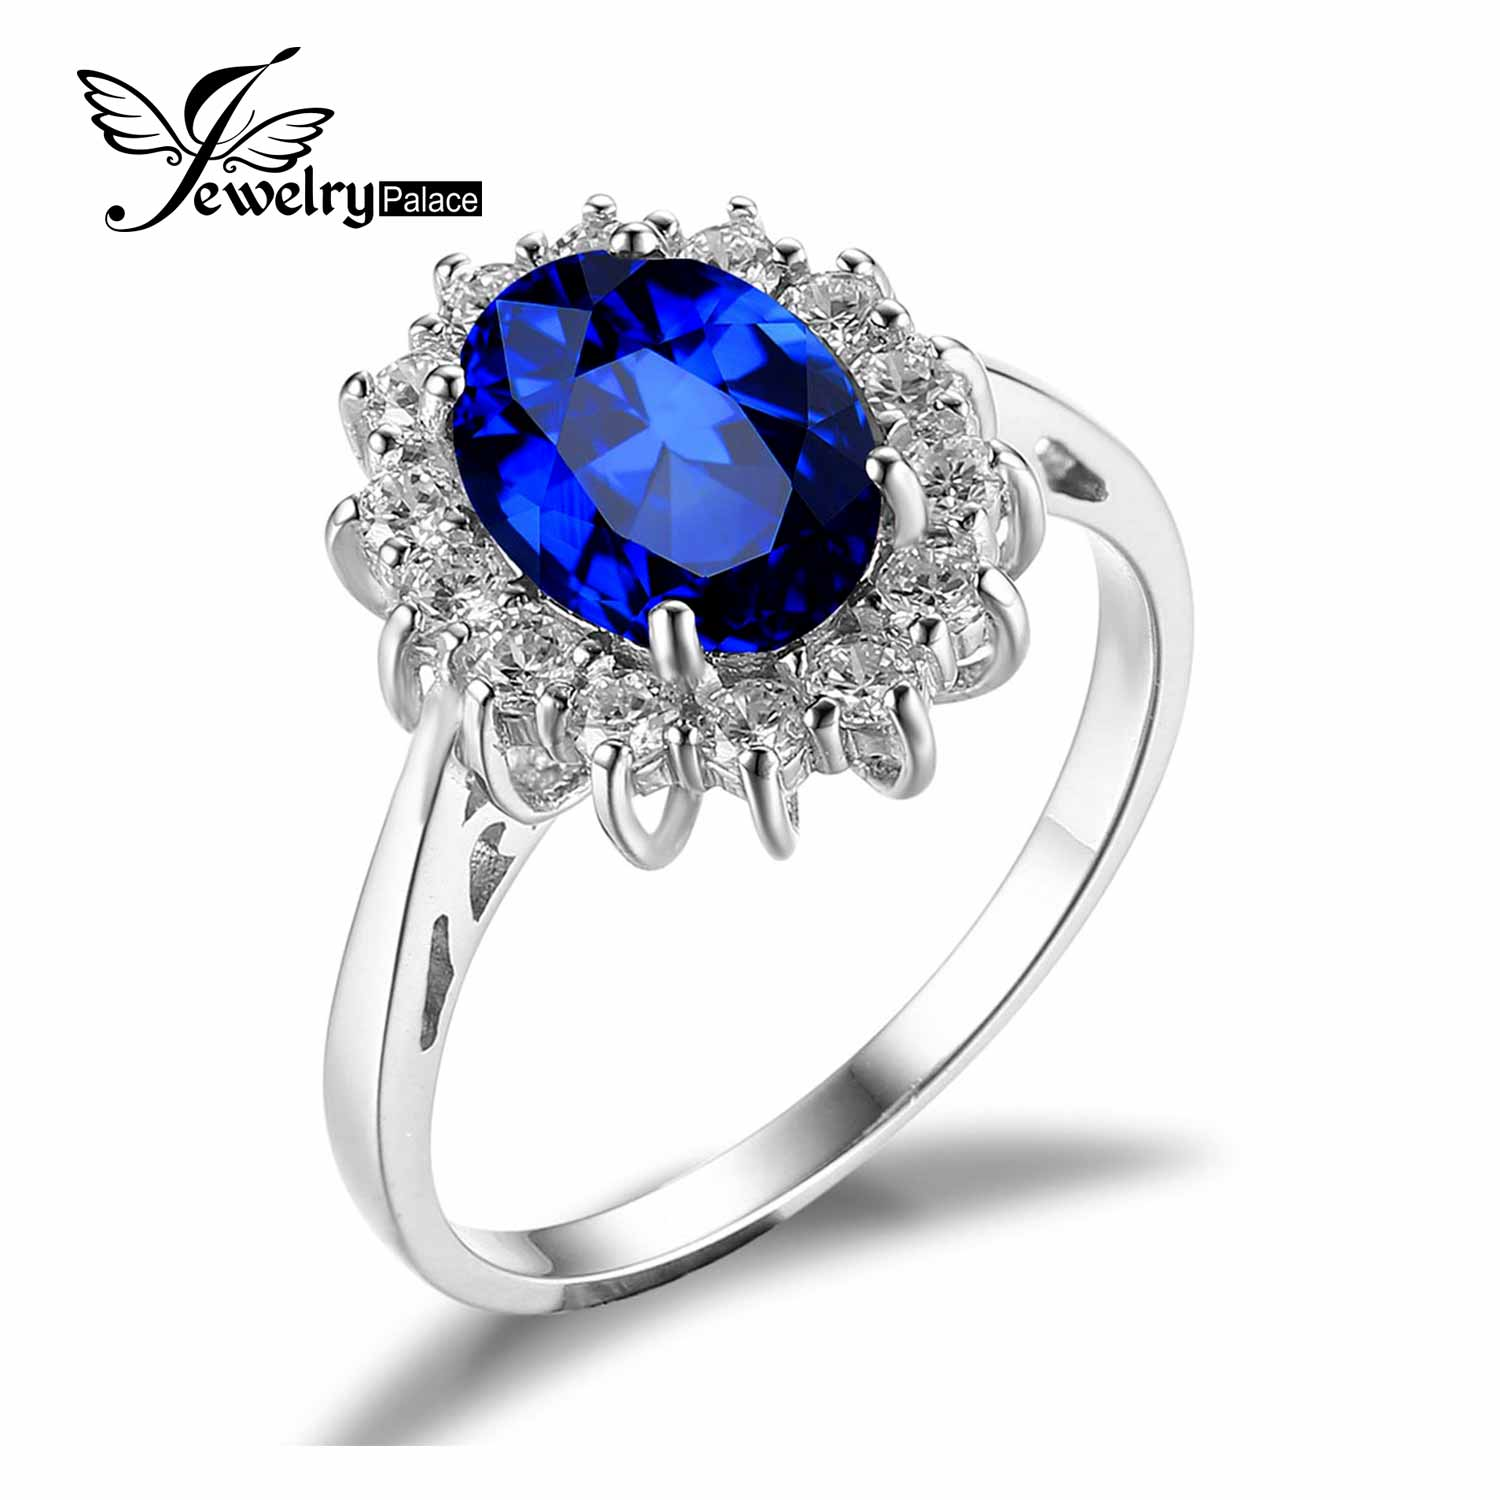 JewelryPalace Princess Diana William Kate Middleton s 3 2ct Created Blue Sapphire Engagement 925 Sterling Silver